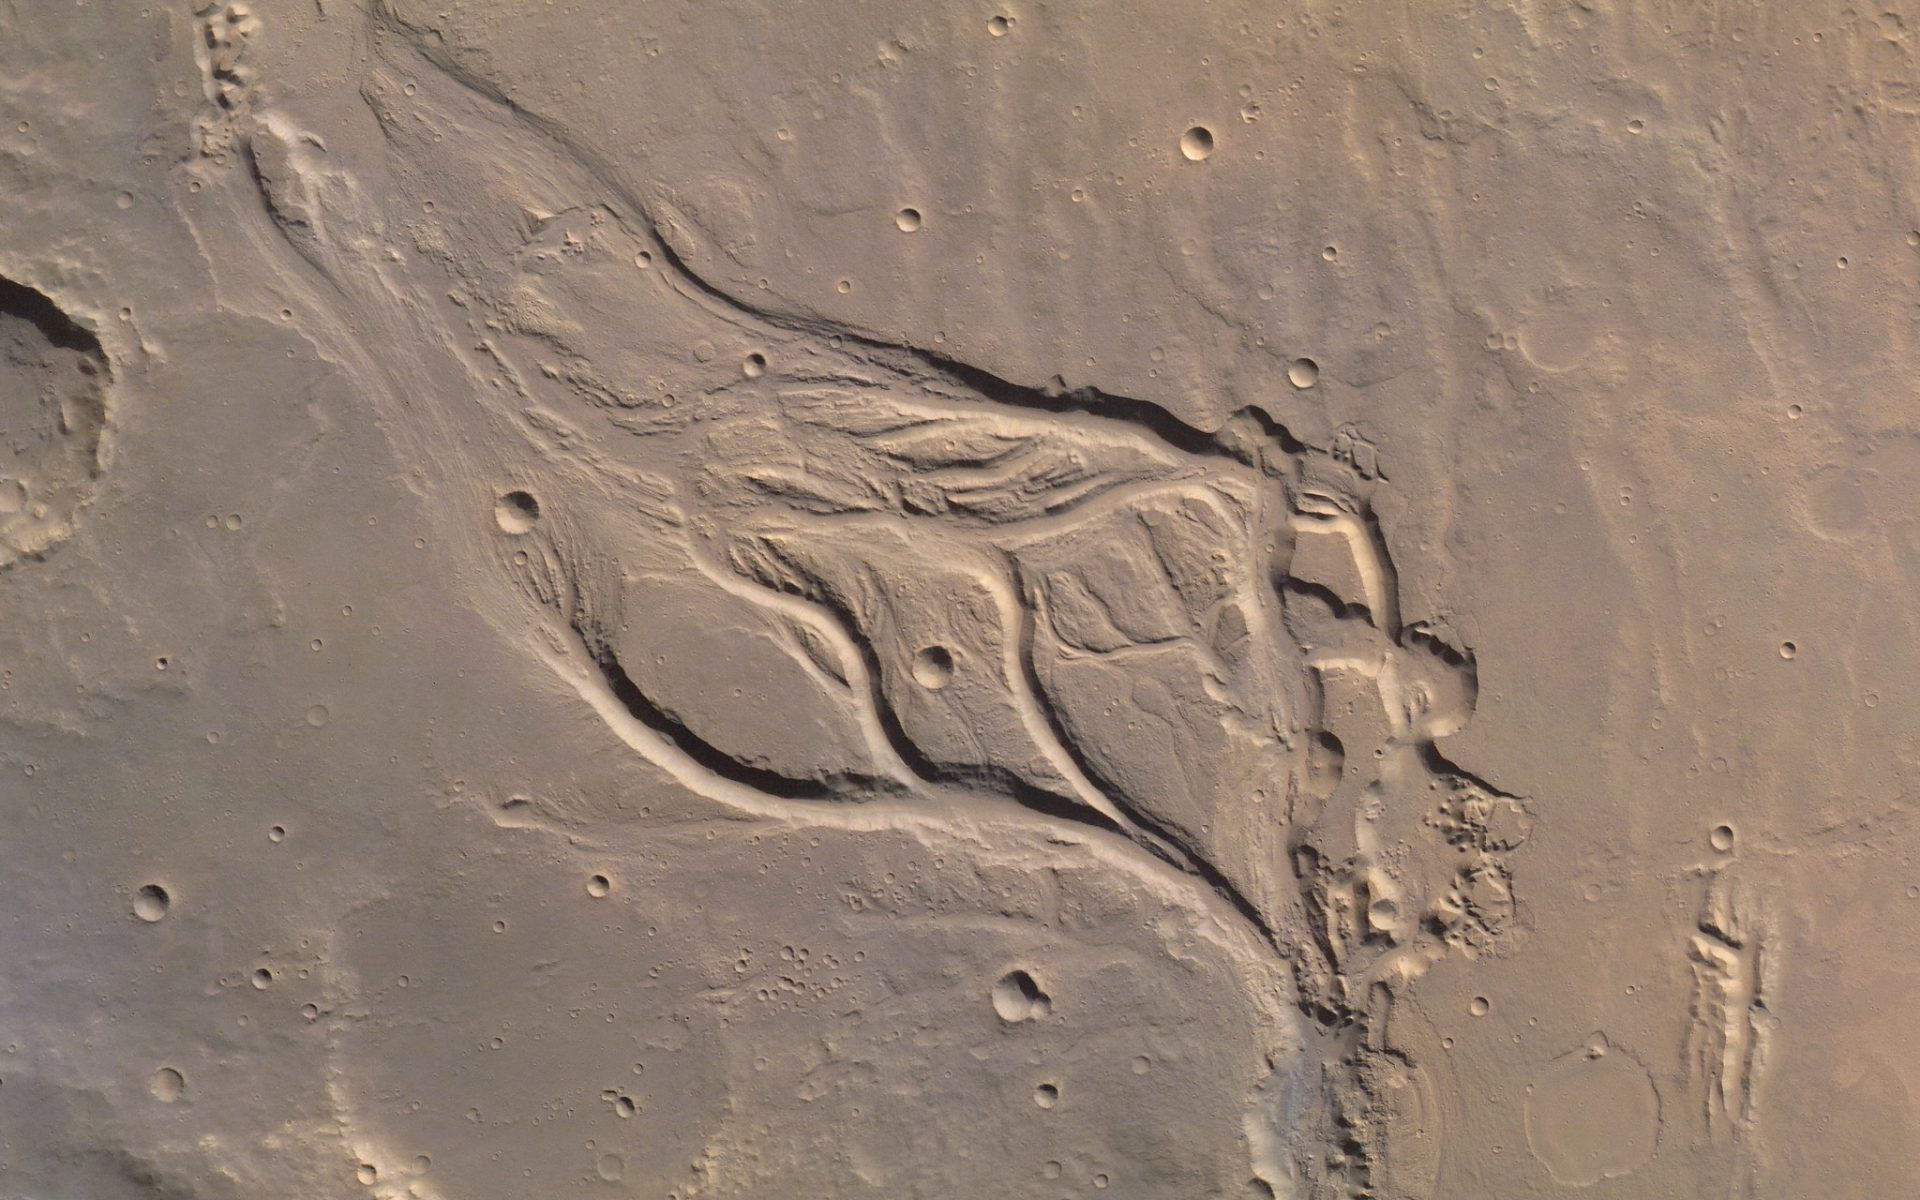 Martian outflow channels at Aurorae Chaos. An outflow from an ancient martian sea